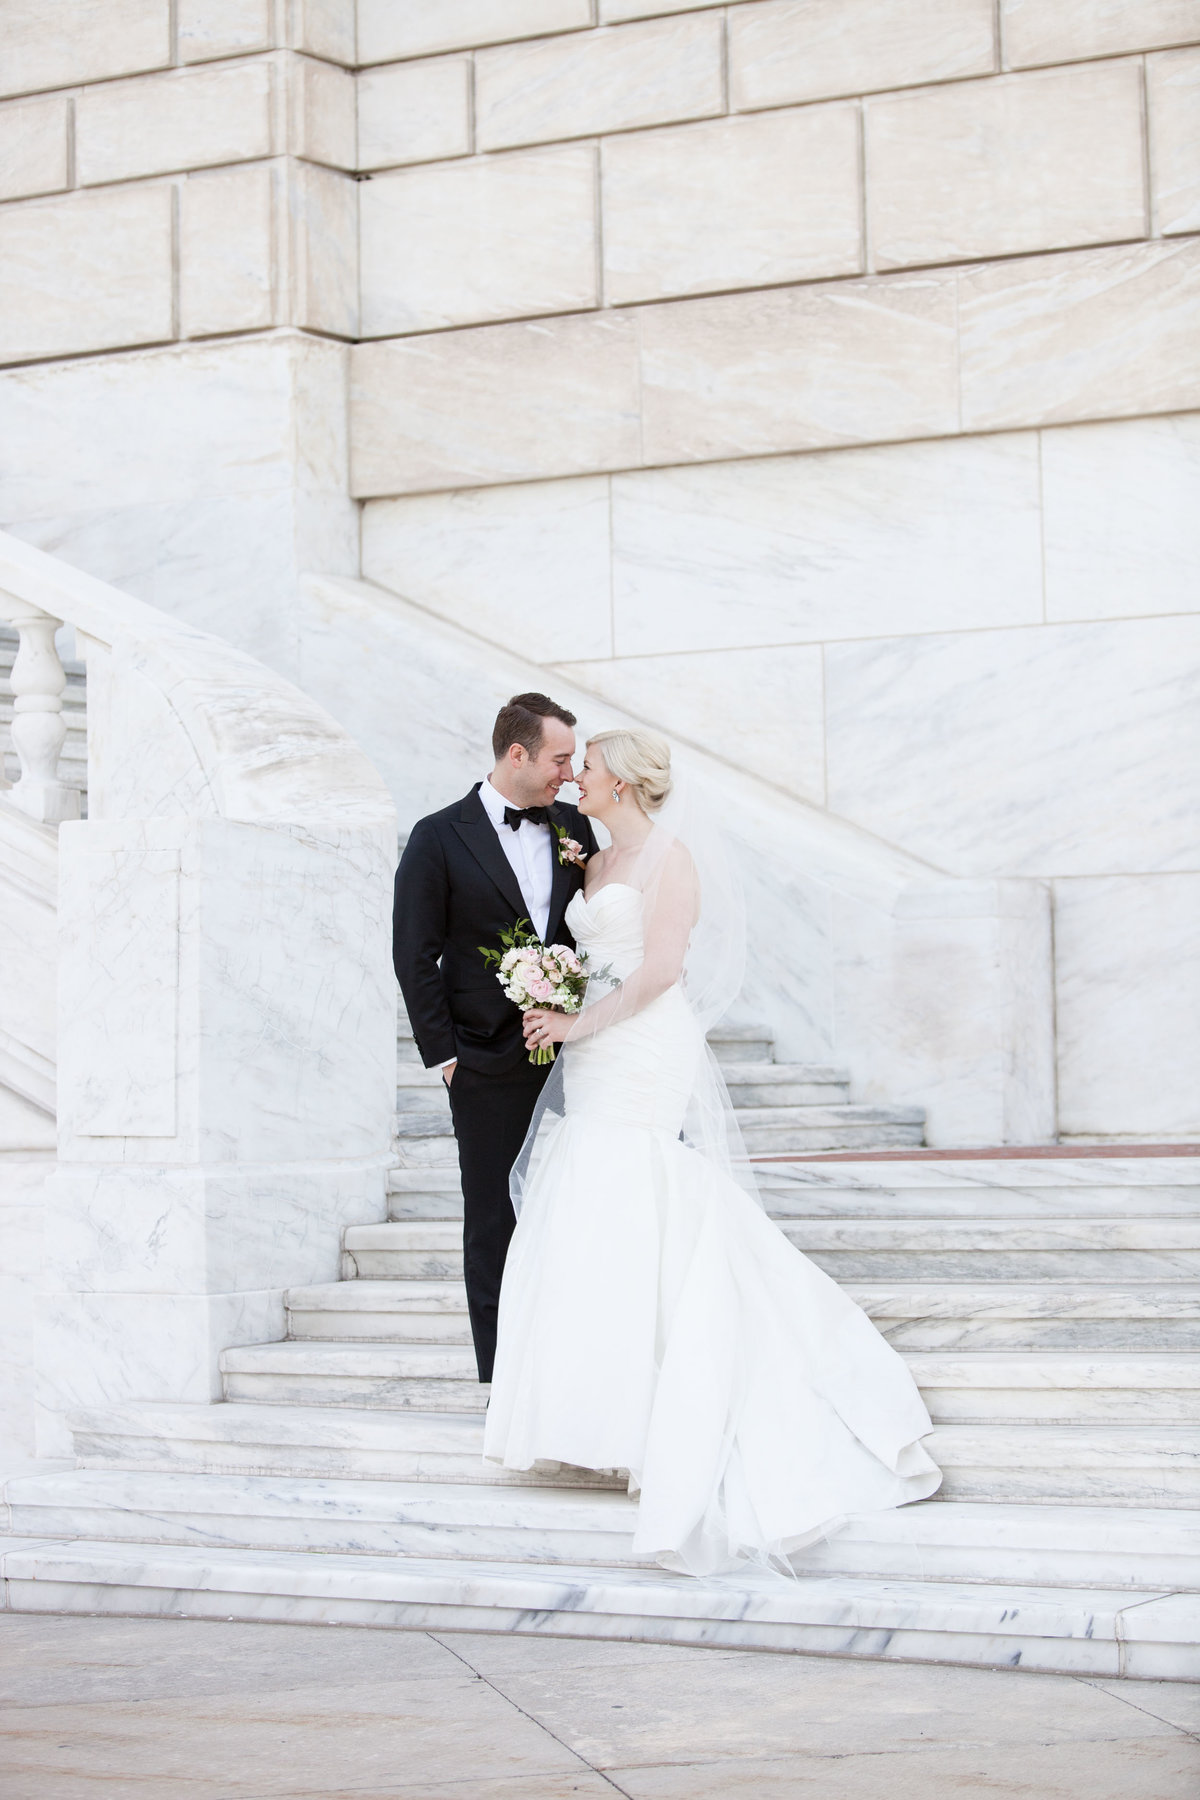 Cottrell Wedding - Natalie Probst Photography519